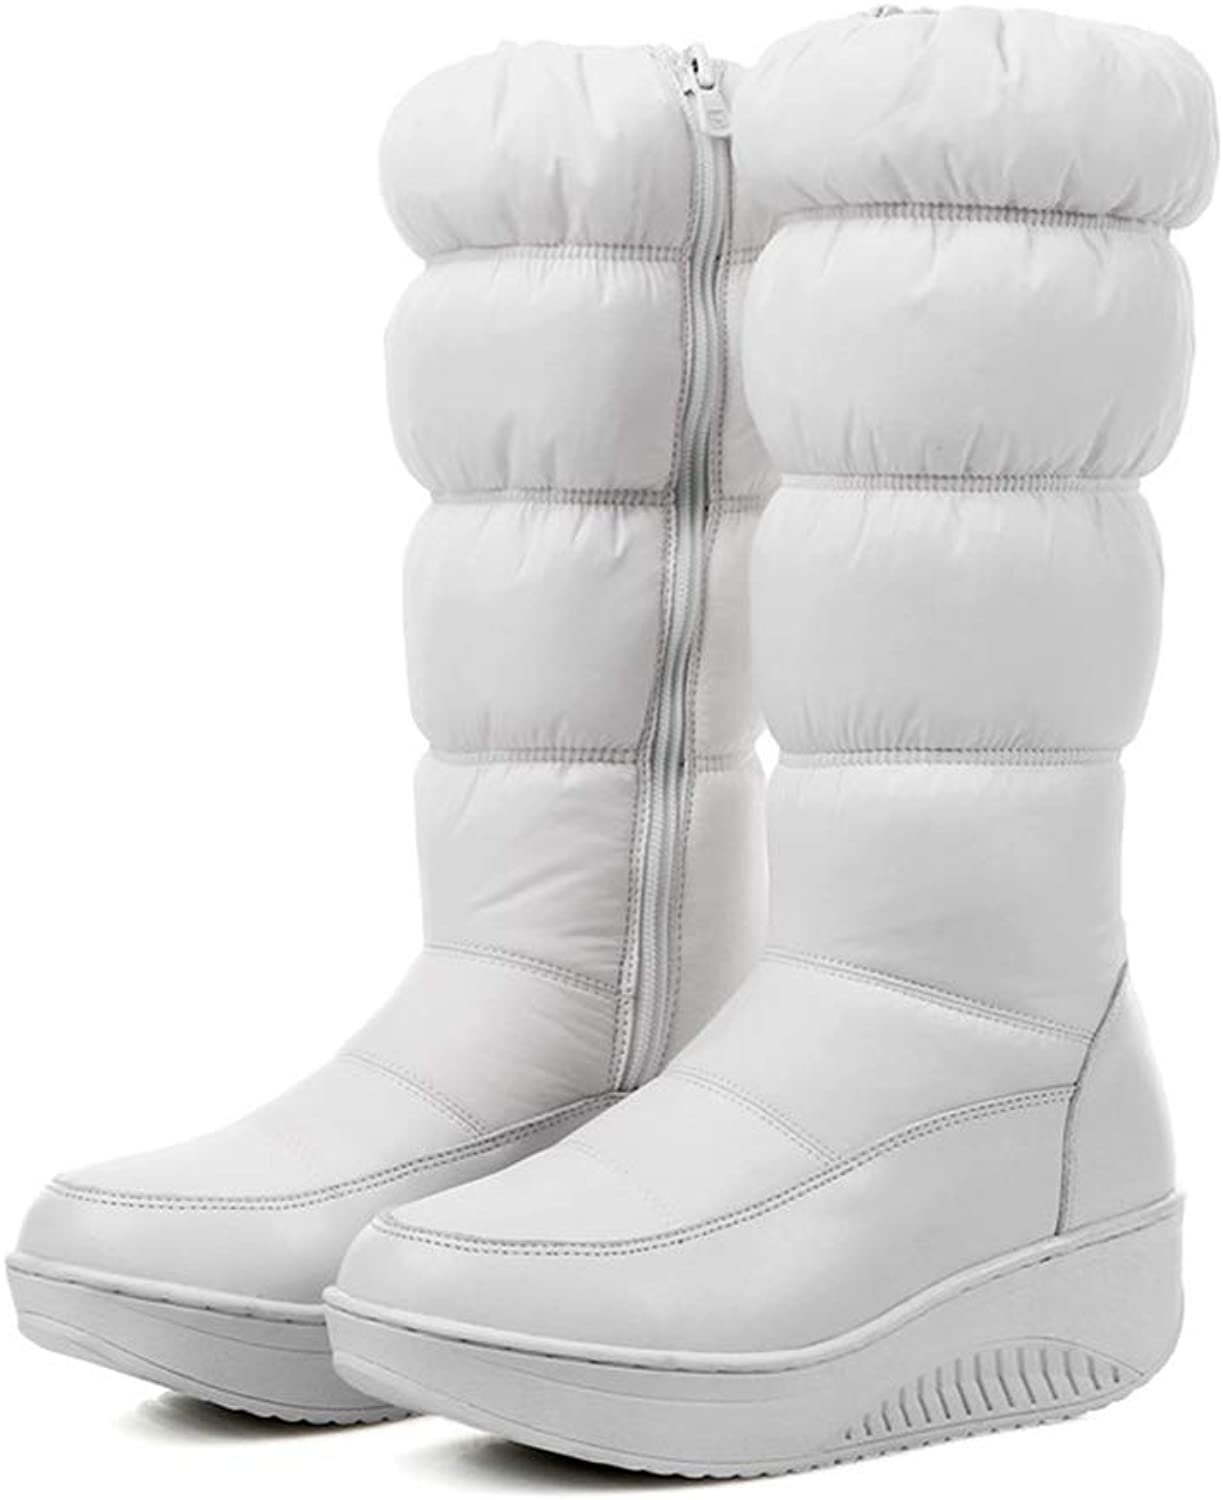 Hoxekle Fashion Women Mid Calf Boots Black White bluee Snow Boots Wedges Platform Zipper Down Waterproof Winter shoes